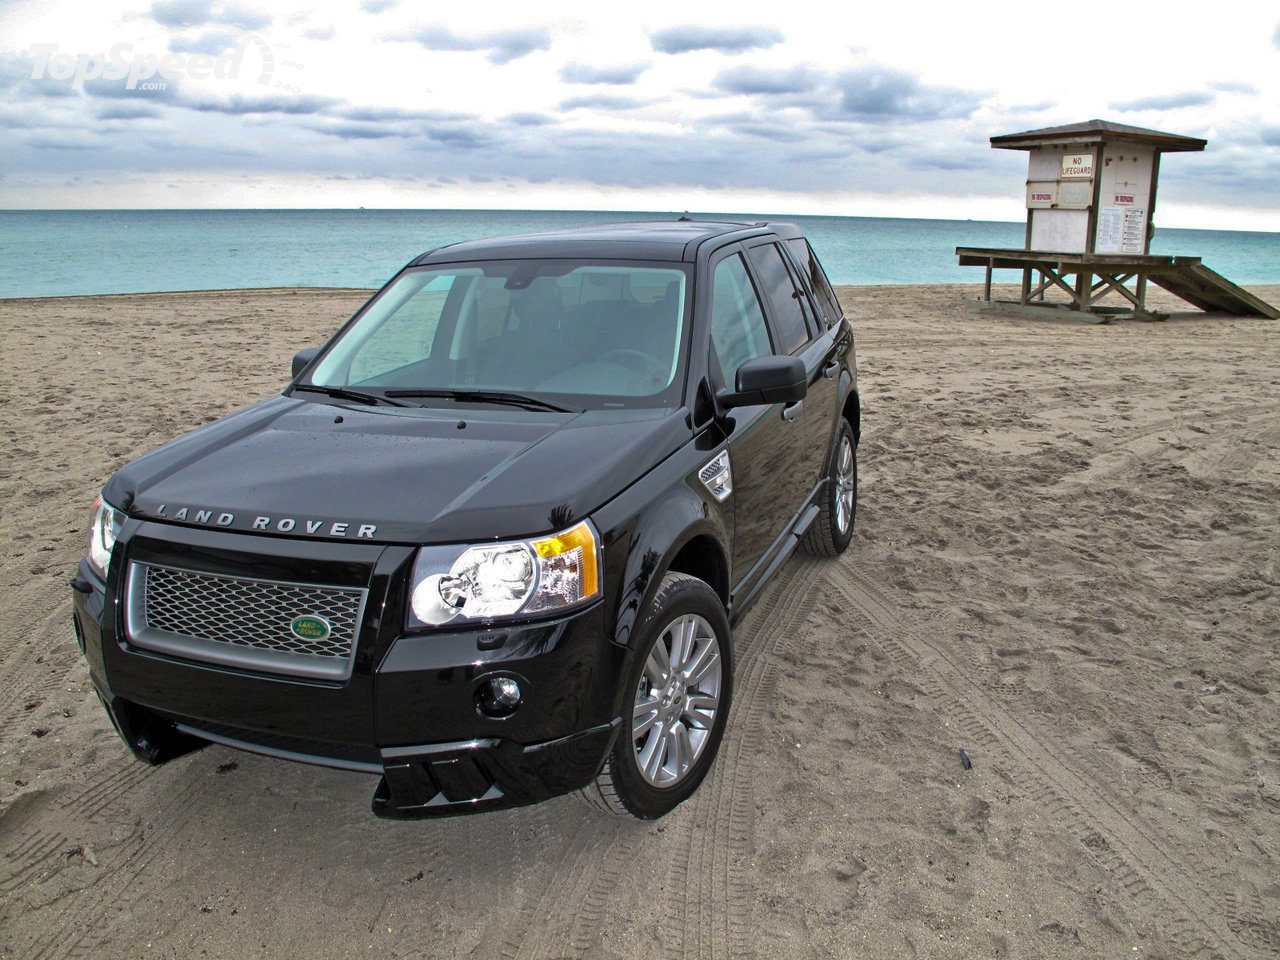 Land Rover LR2 black #1